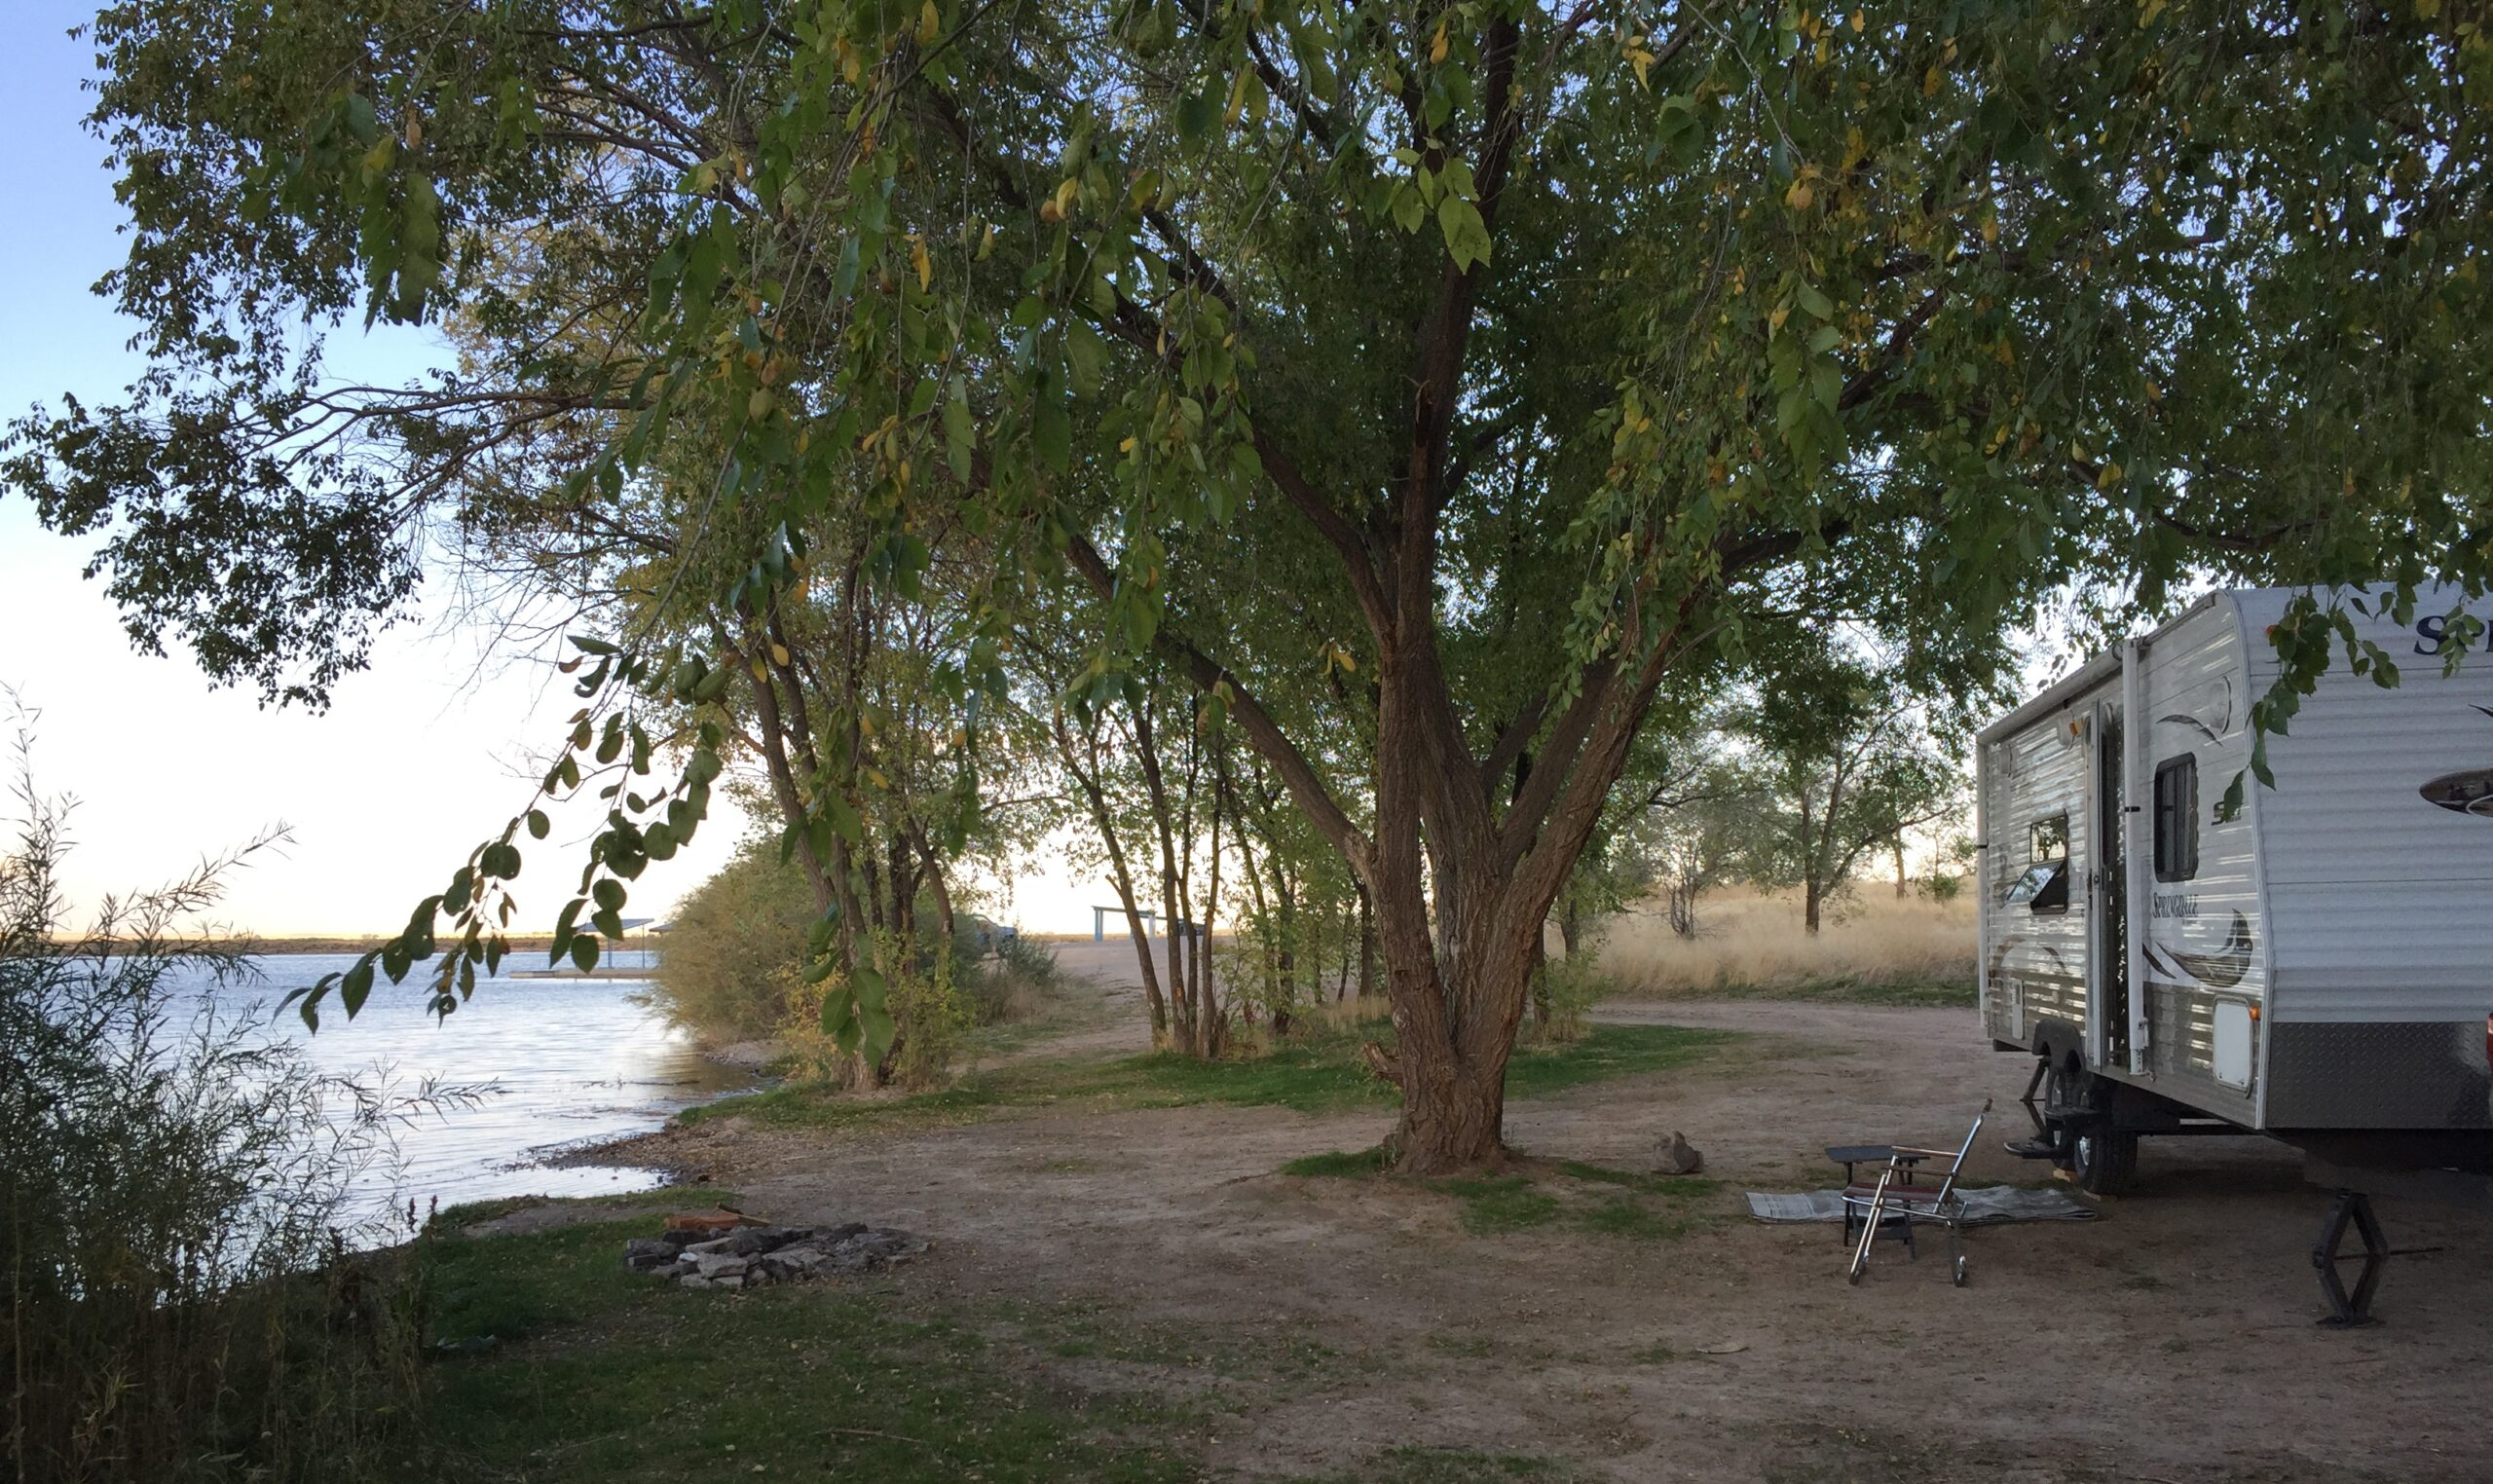 going off the grid in an RV by the water